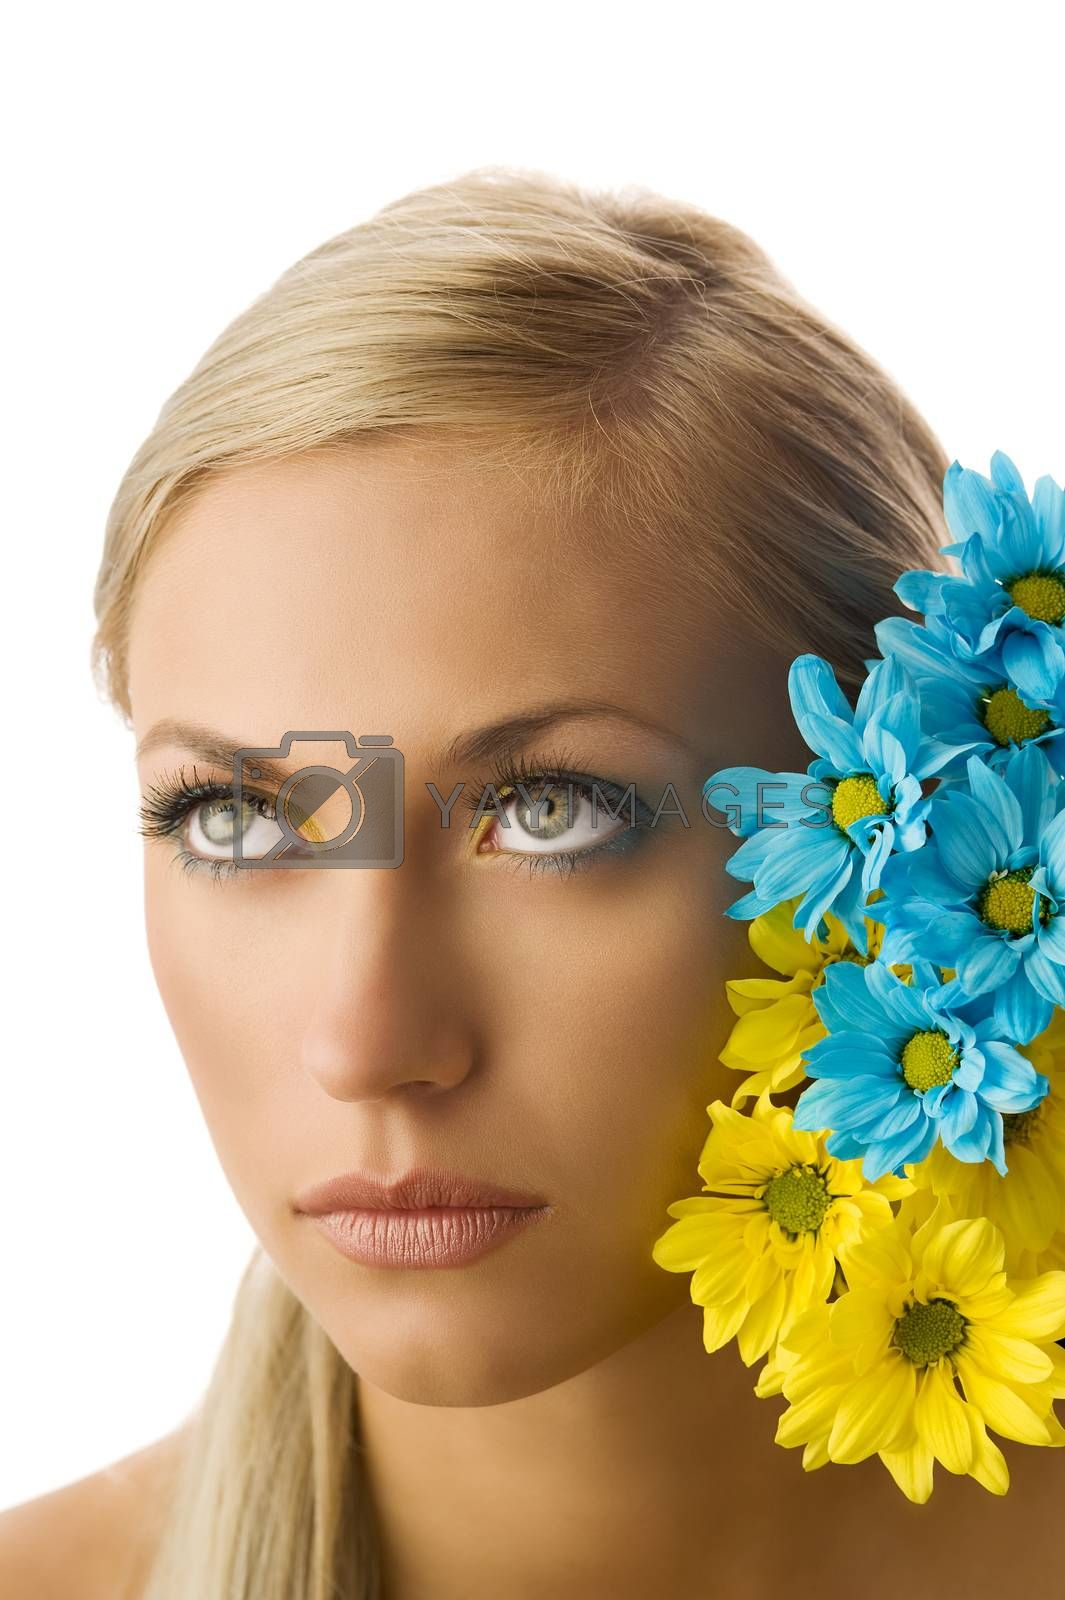 Royalty free image of girl and yellow and blue flower by fotoCD